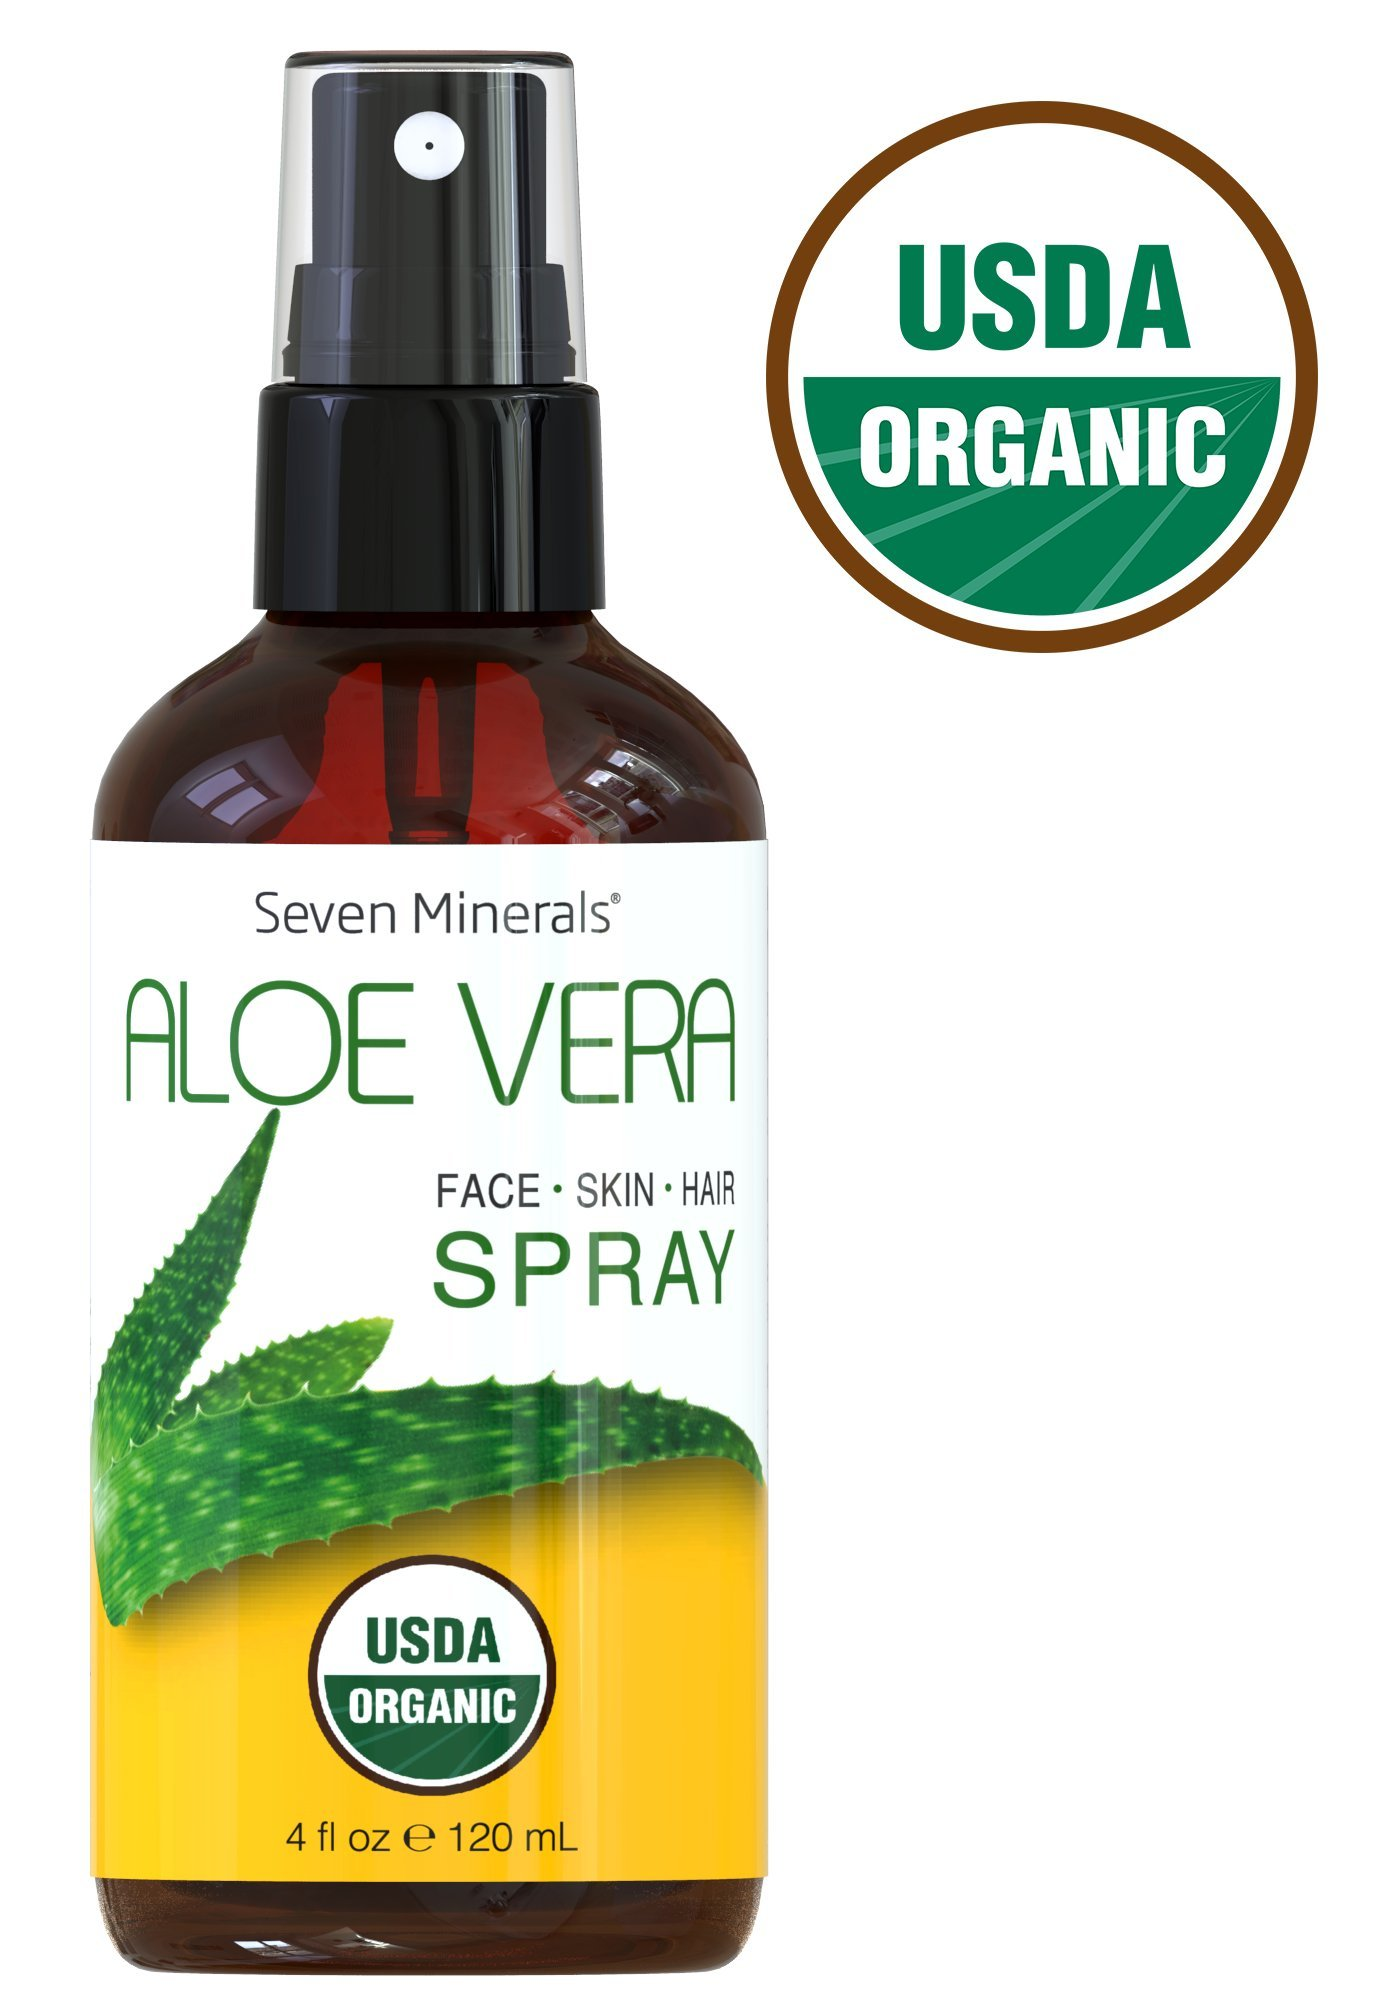 #1 USDA Organic Aloe Vera Spray with 100% Pure Organic Aloe. Alcohol-Free, No Toxic Chemicals, Thickeners Or Preservatives - For Healthy Skin, Face, Hair, And After Sun Relief (4 fl oz)